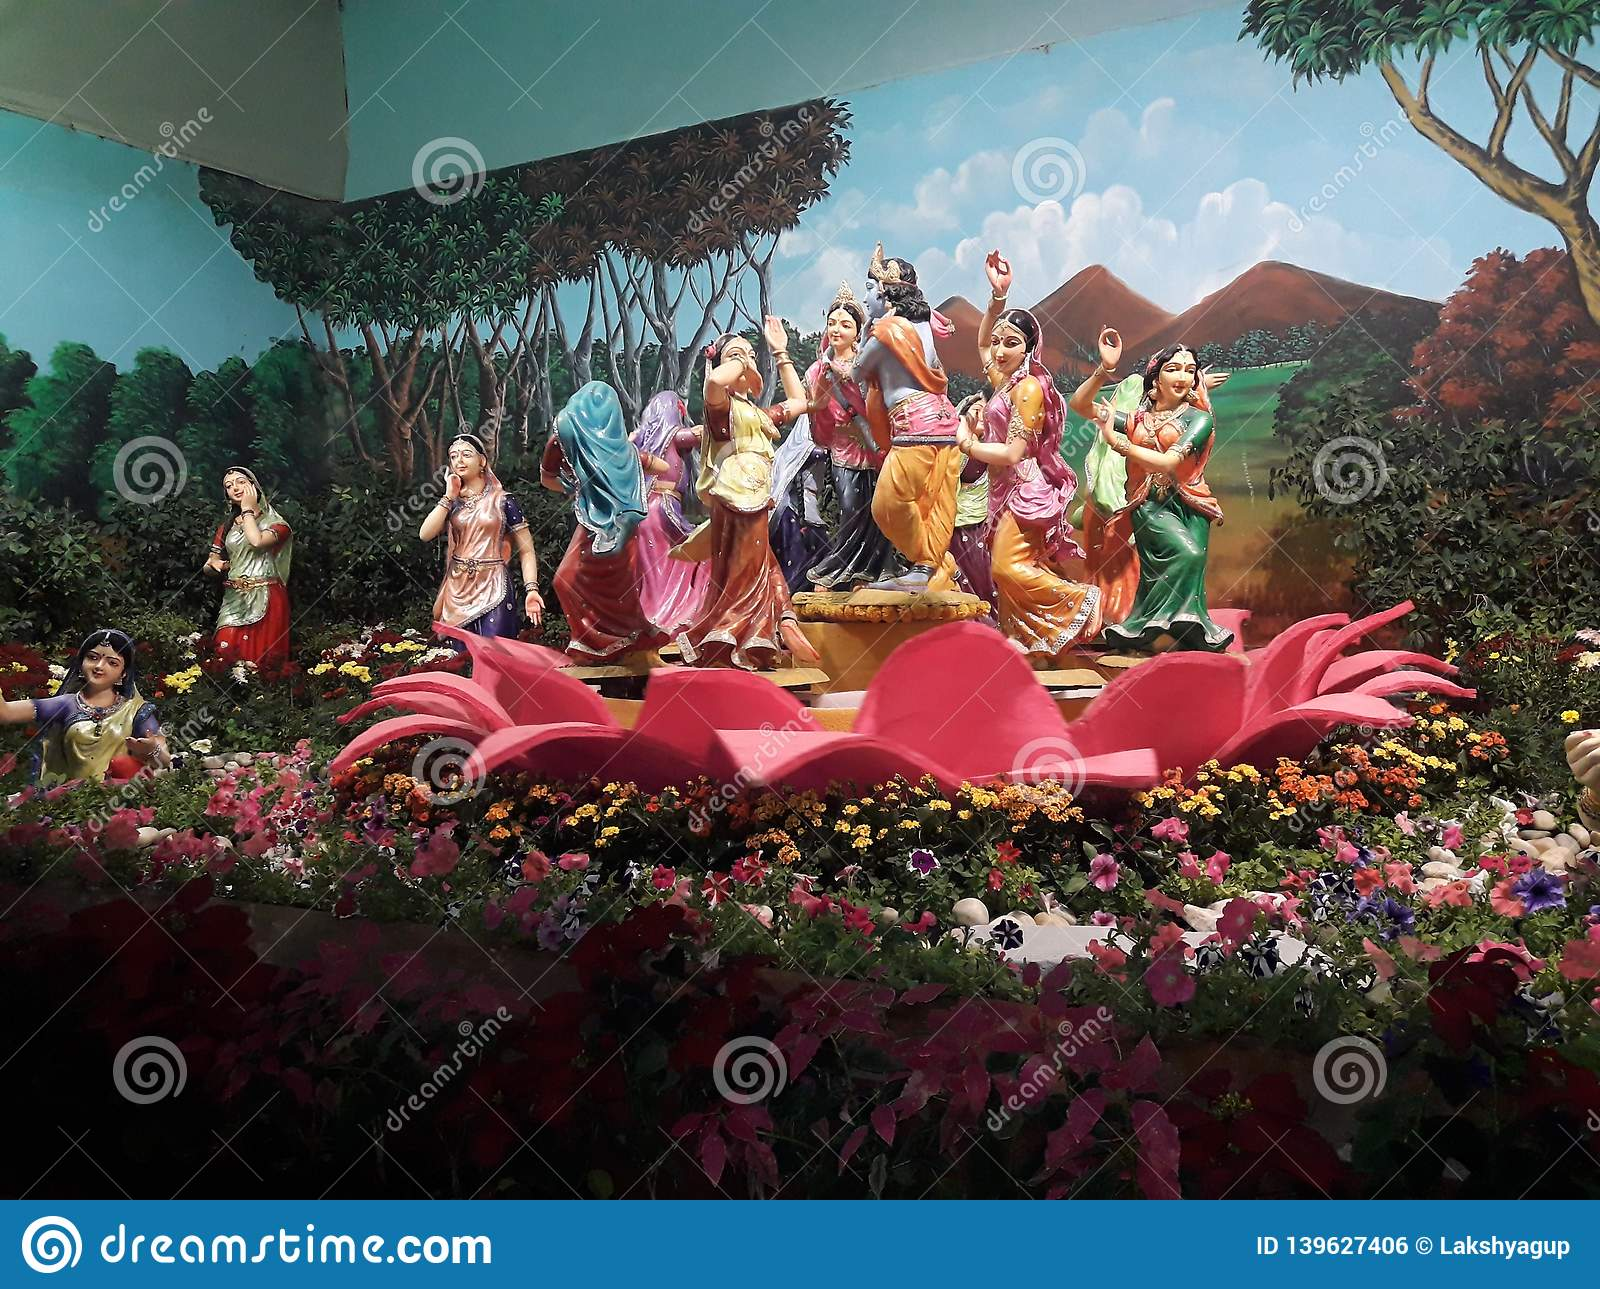 This Is The Photo Of Dancing Monument Of Lord Krishna And